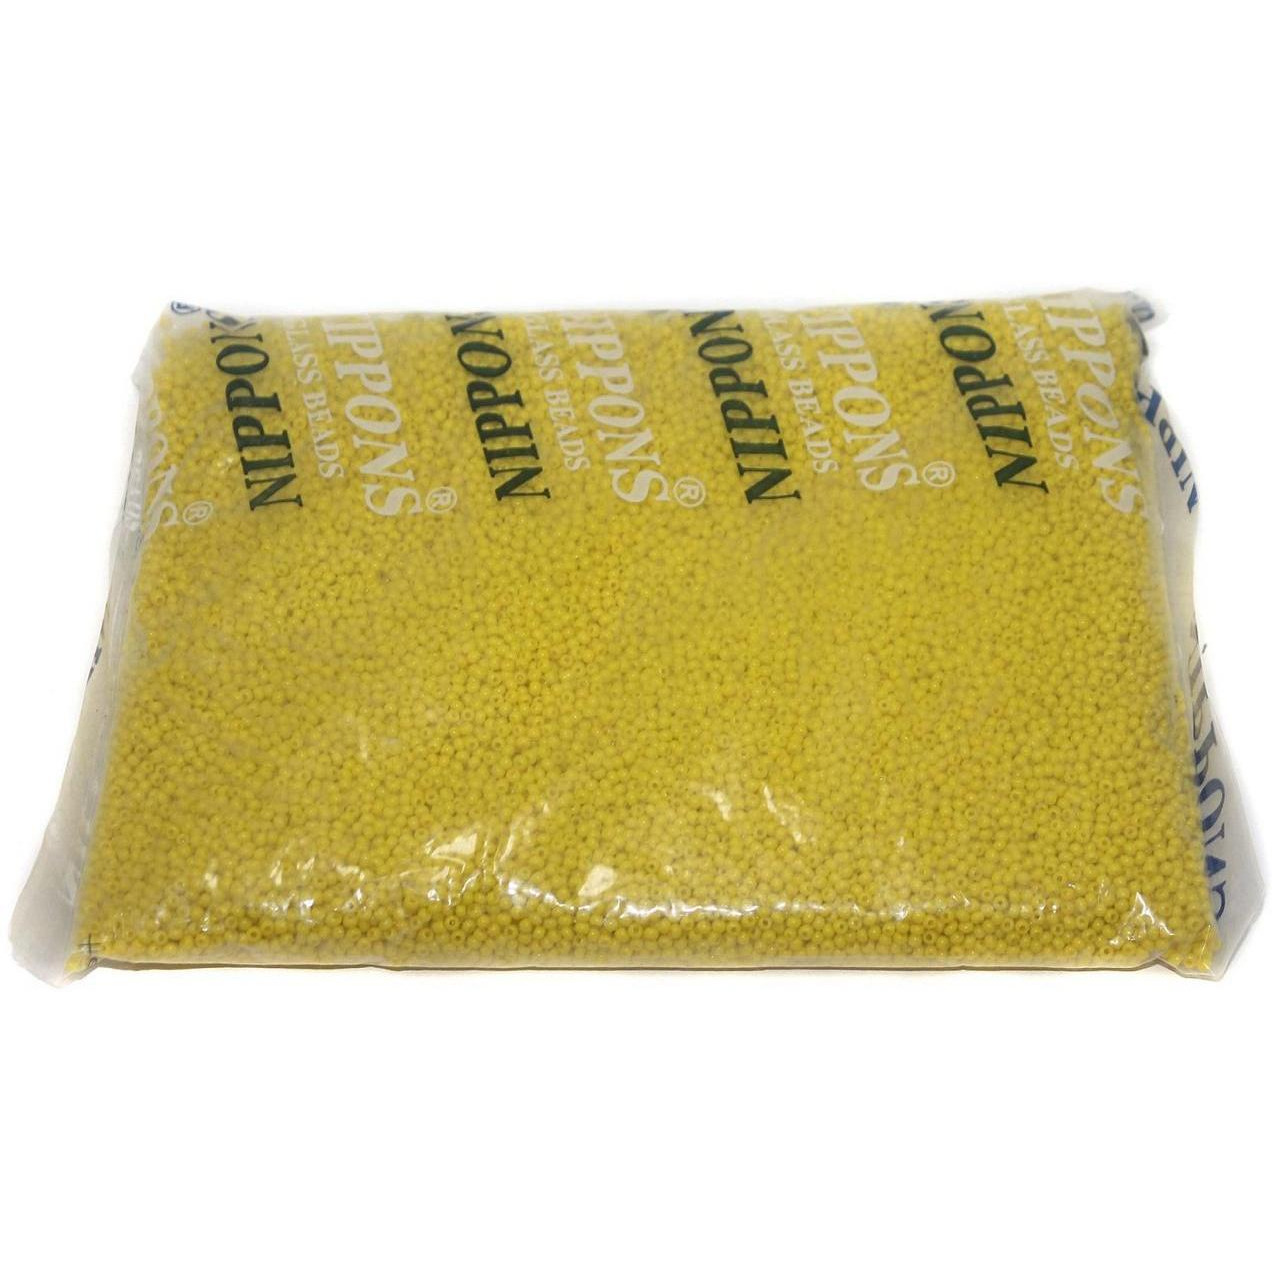 Beadsnfashion Jewellery, Embroidery & Crafts Nippon Seed Beads Yellow Opaque 11/0, Pack OF 500 Gm